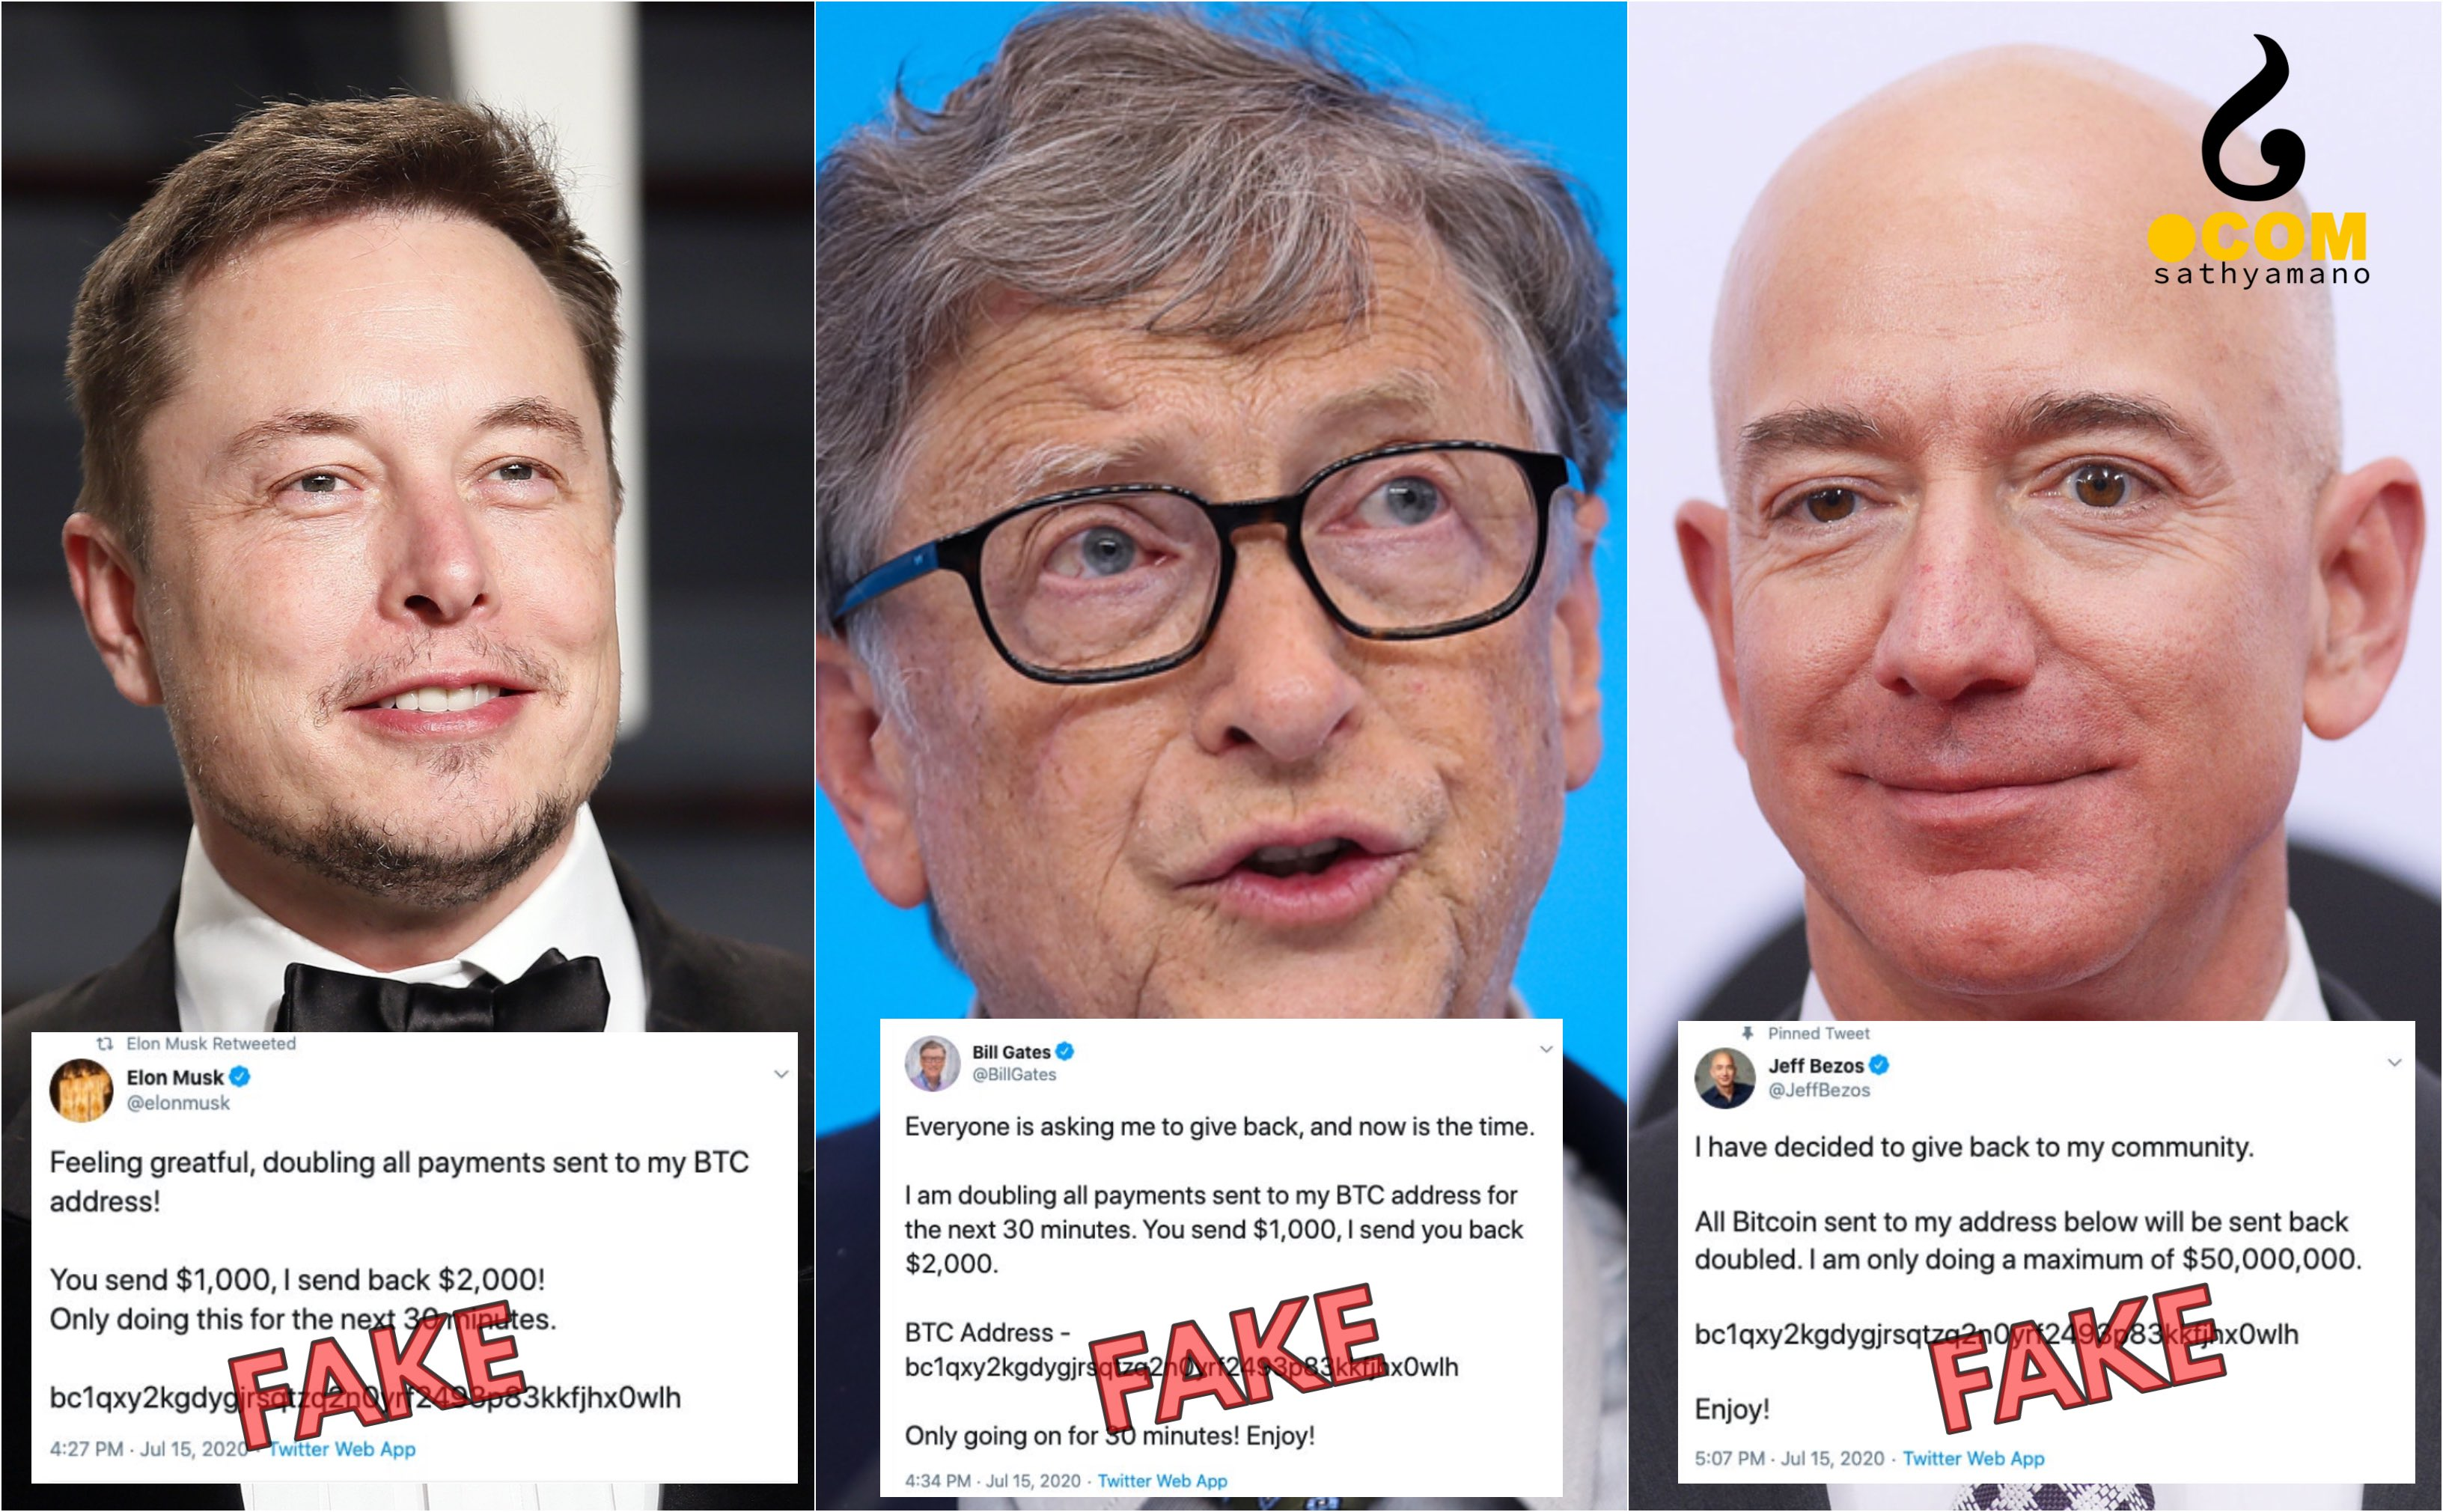 Elon Musk, Bill Gates and Jeff Bezos' Twitter hacked with Bitcoin scam